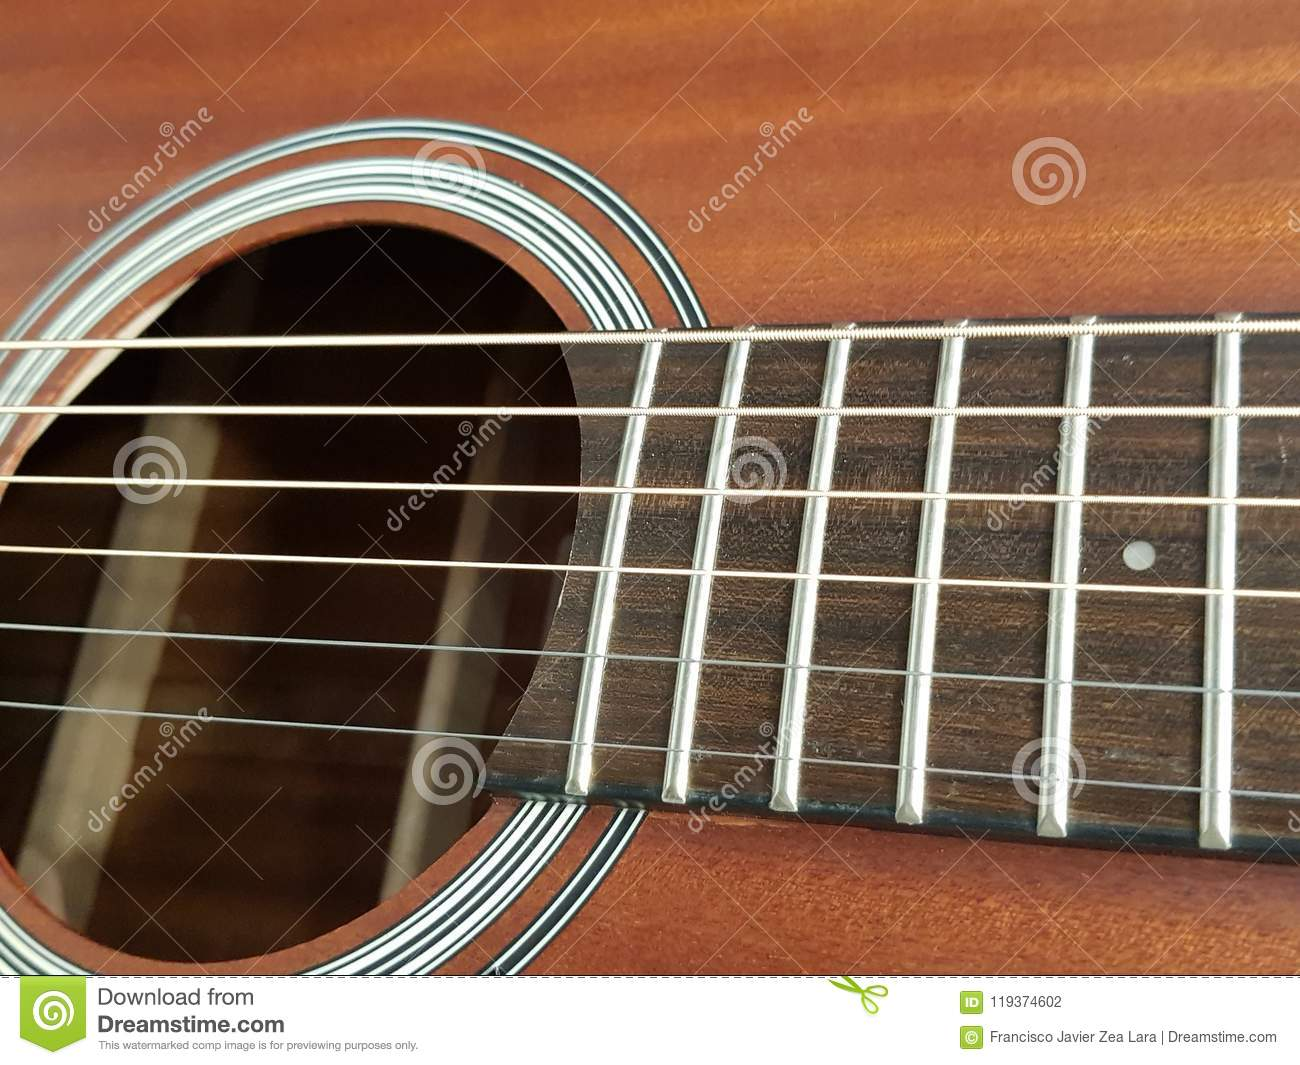 064119ee82 music and sound, melody and harmony, used in different styles and musical  genres, composition and interpretation